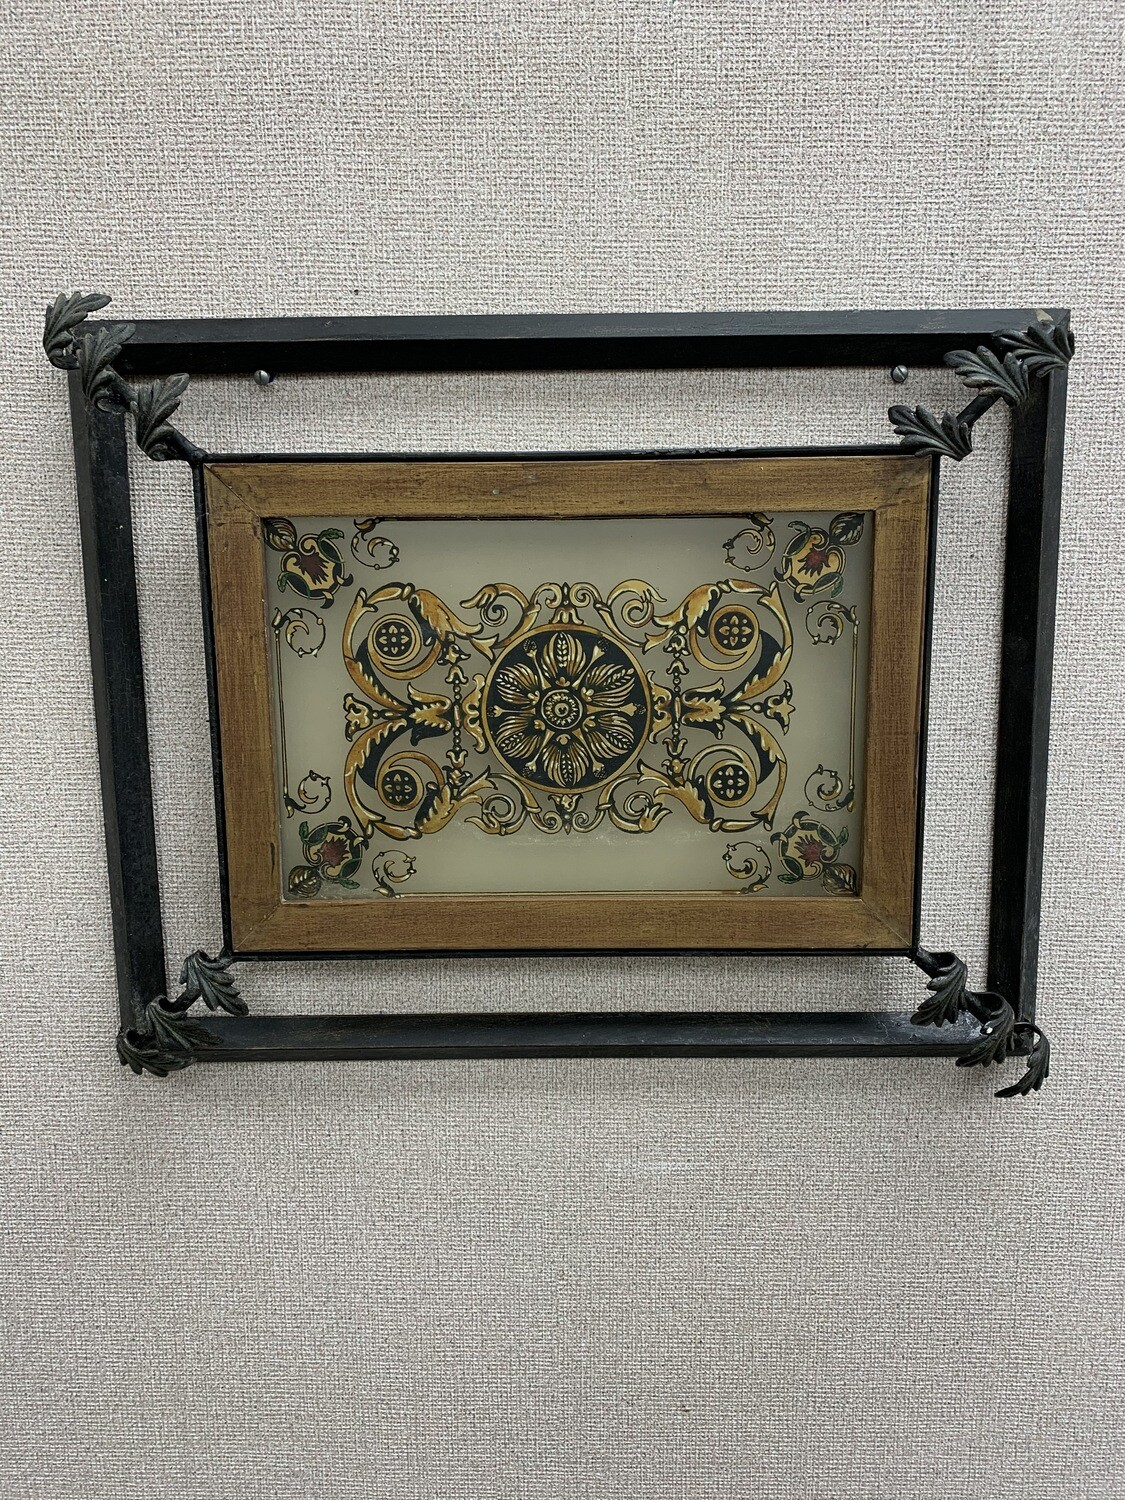 Metal & Glass Hand Painted Decorative Wall Hanging